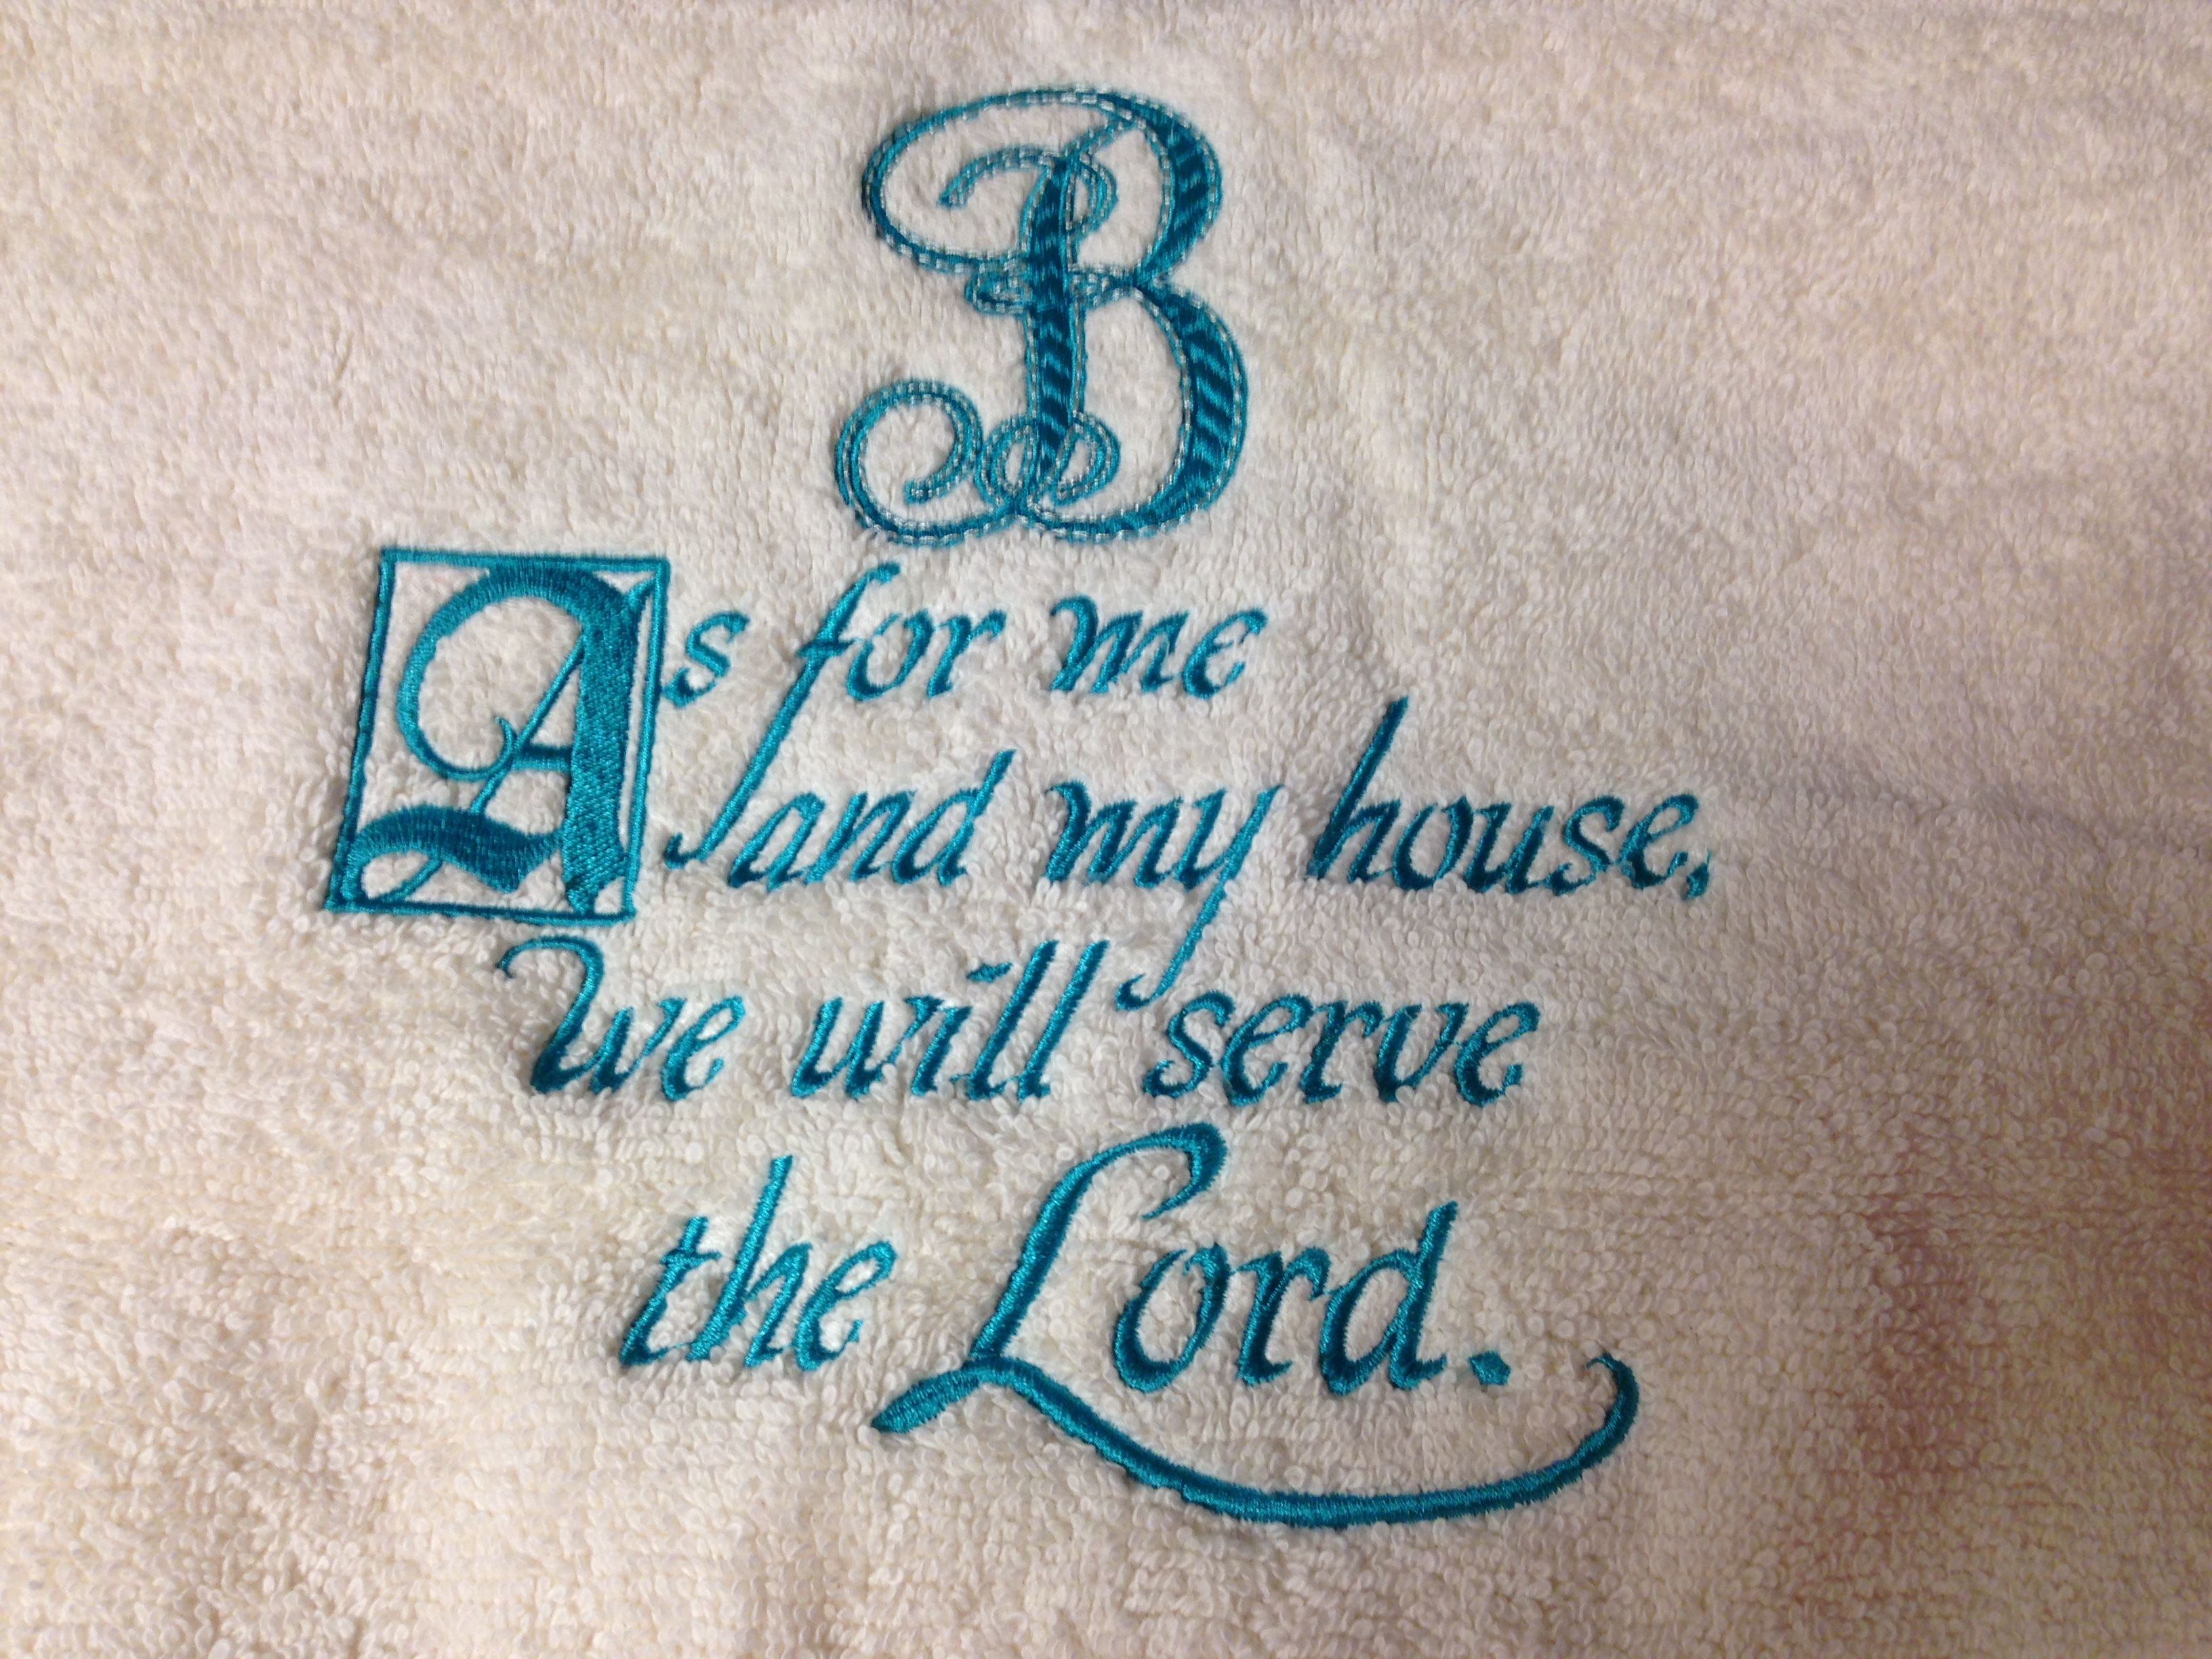 Scripture embroidery library font applique corner as for me and